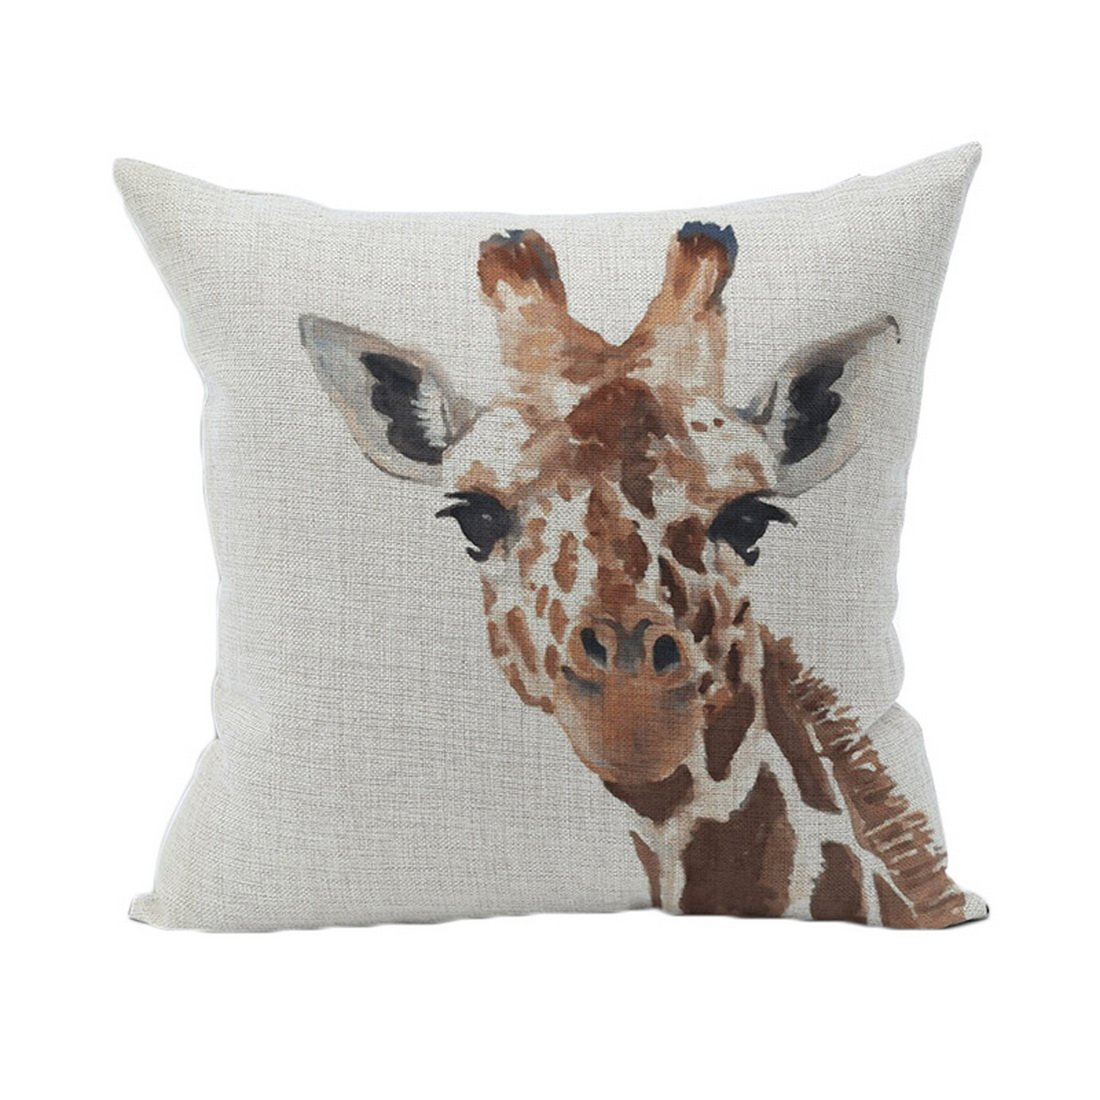 Souarts Giraffe Pattern Chair Back Cushion Linen Throw Square Pillowcase Decorative Pillowcase For Home Living Room 45*45cm Hellocrafts